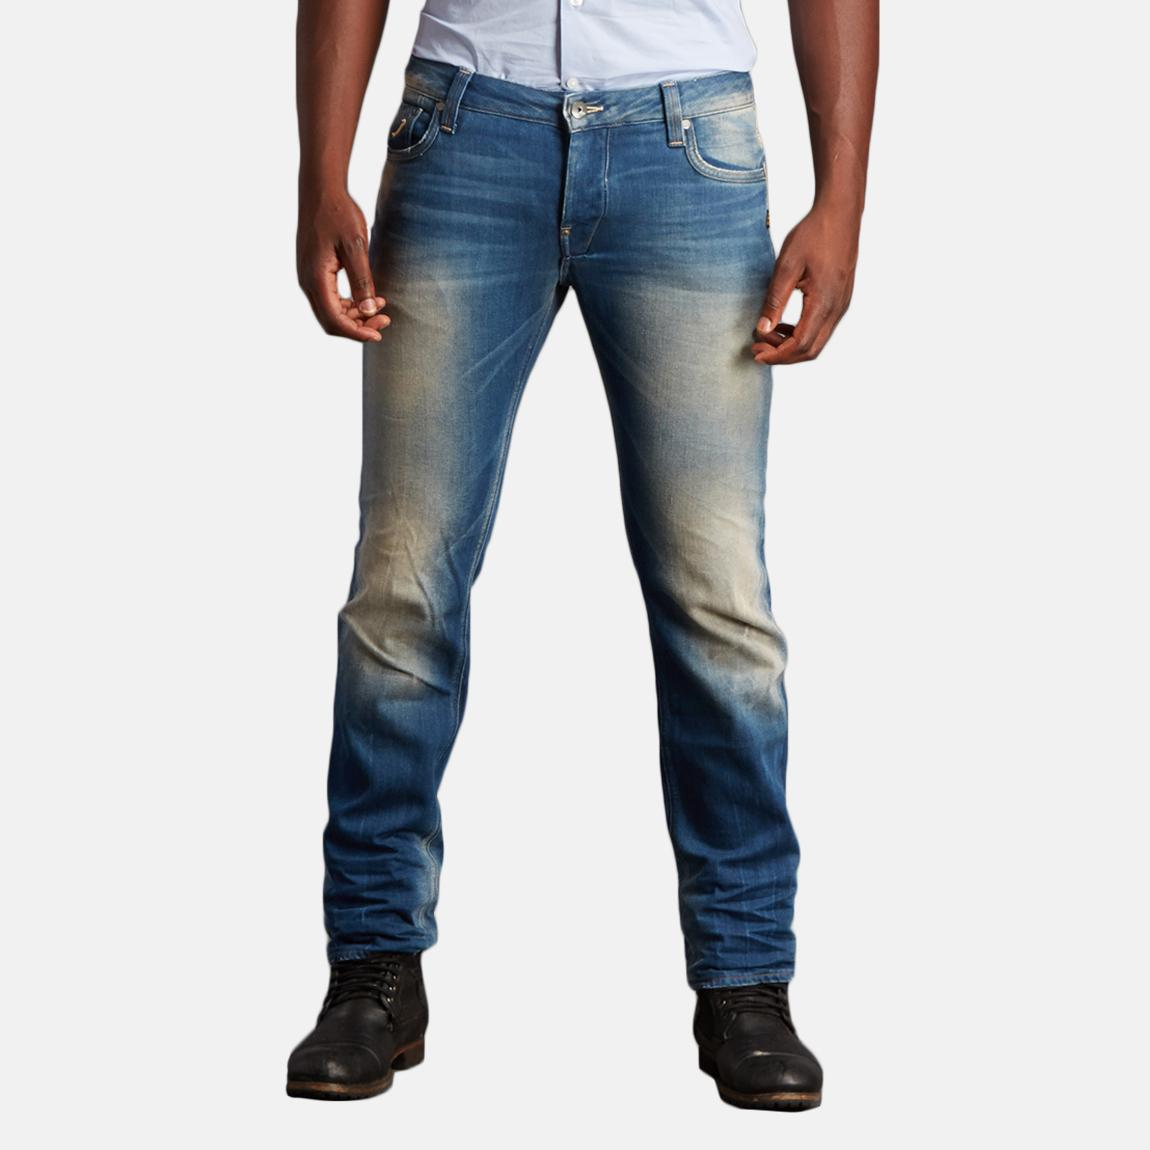 attacc low straight medium aged g star raw jeans. Black Bedroom Furniture Sets. Home Design Ideas